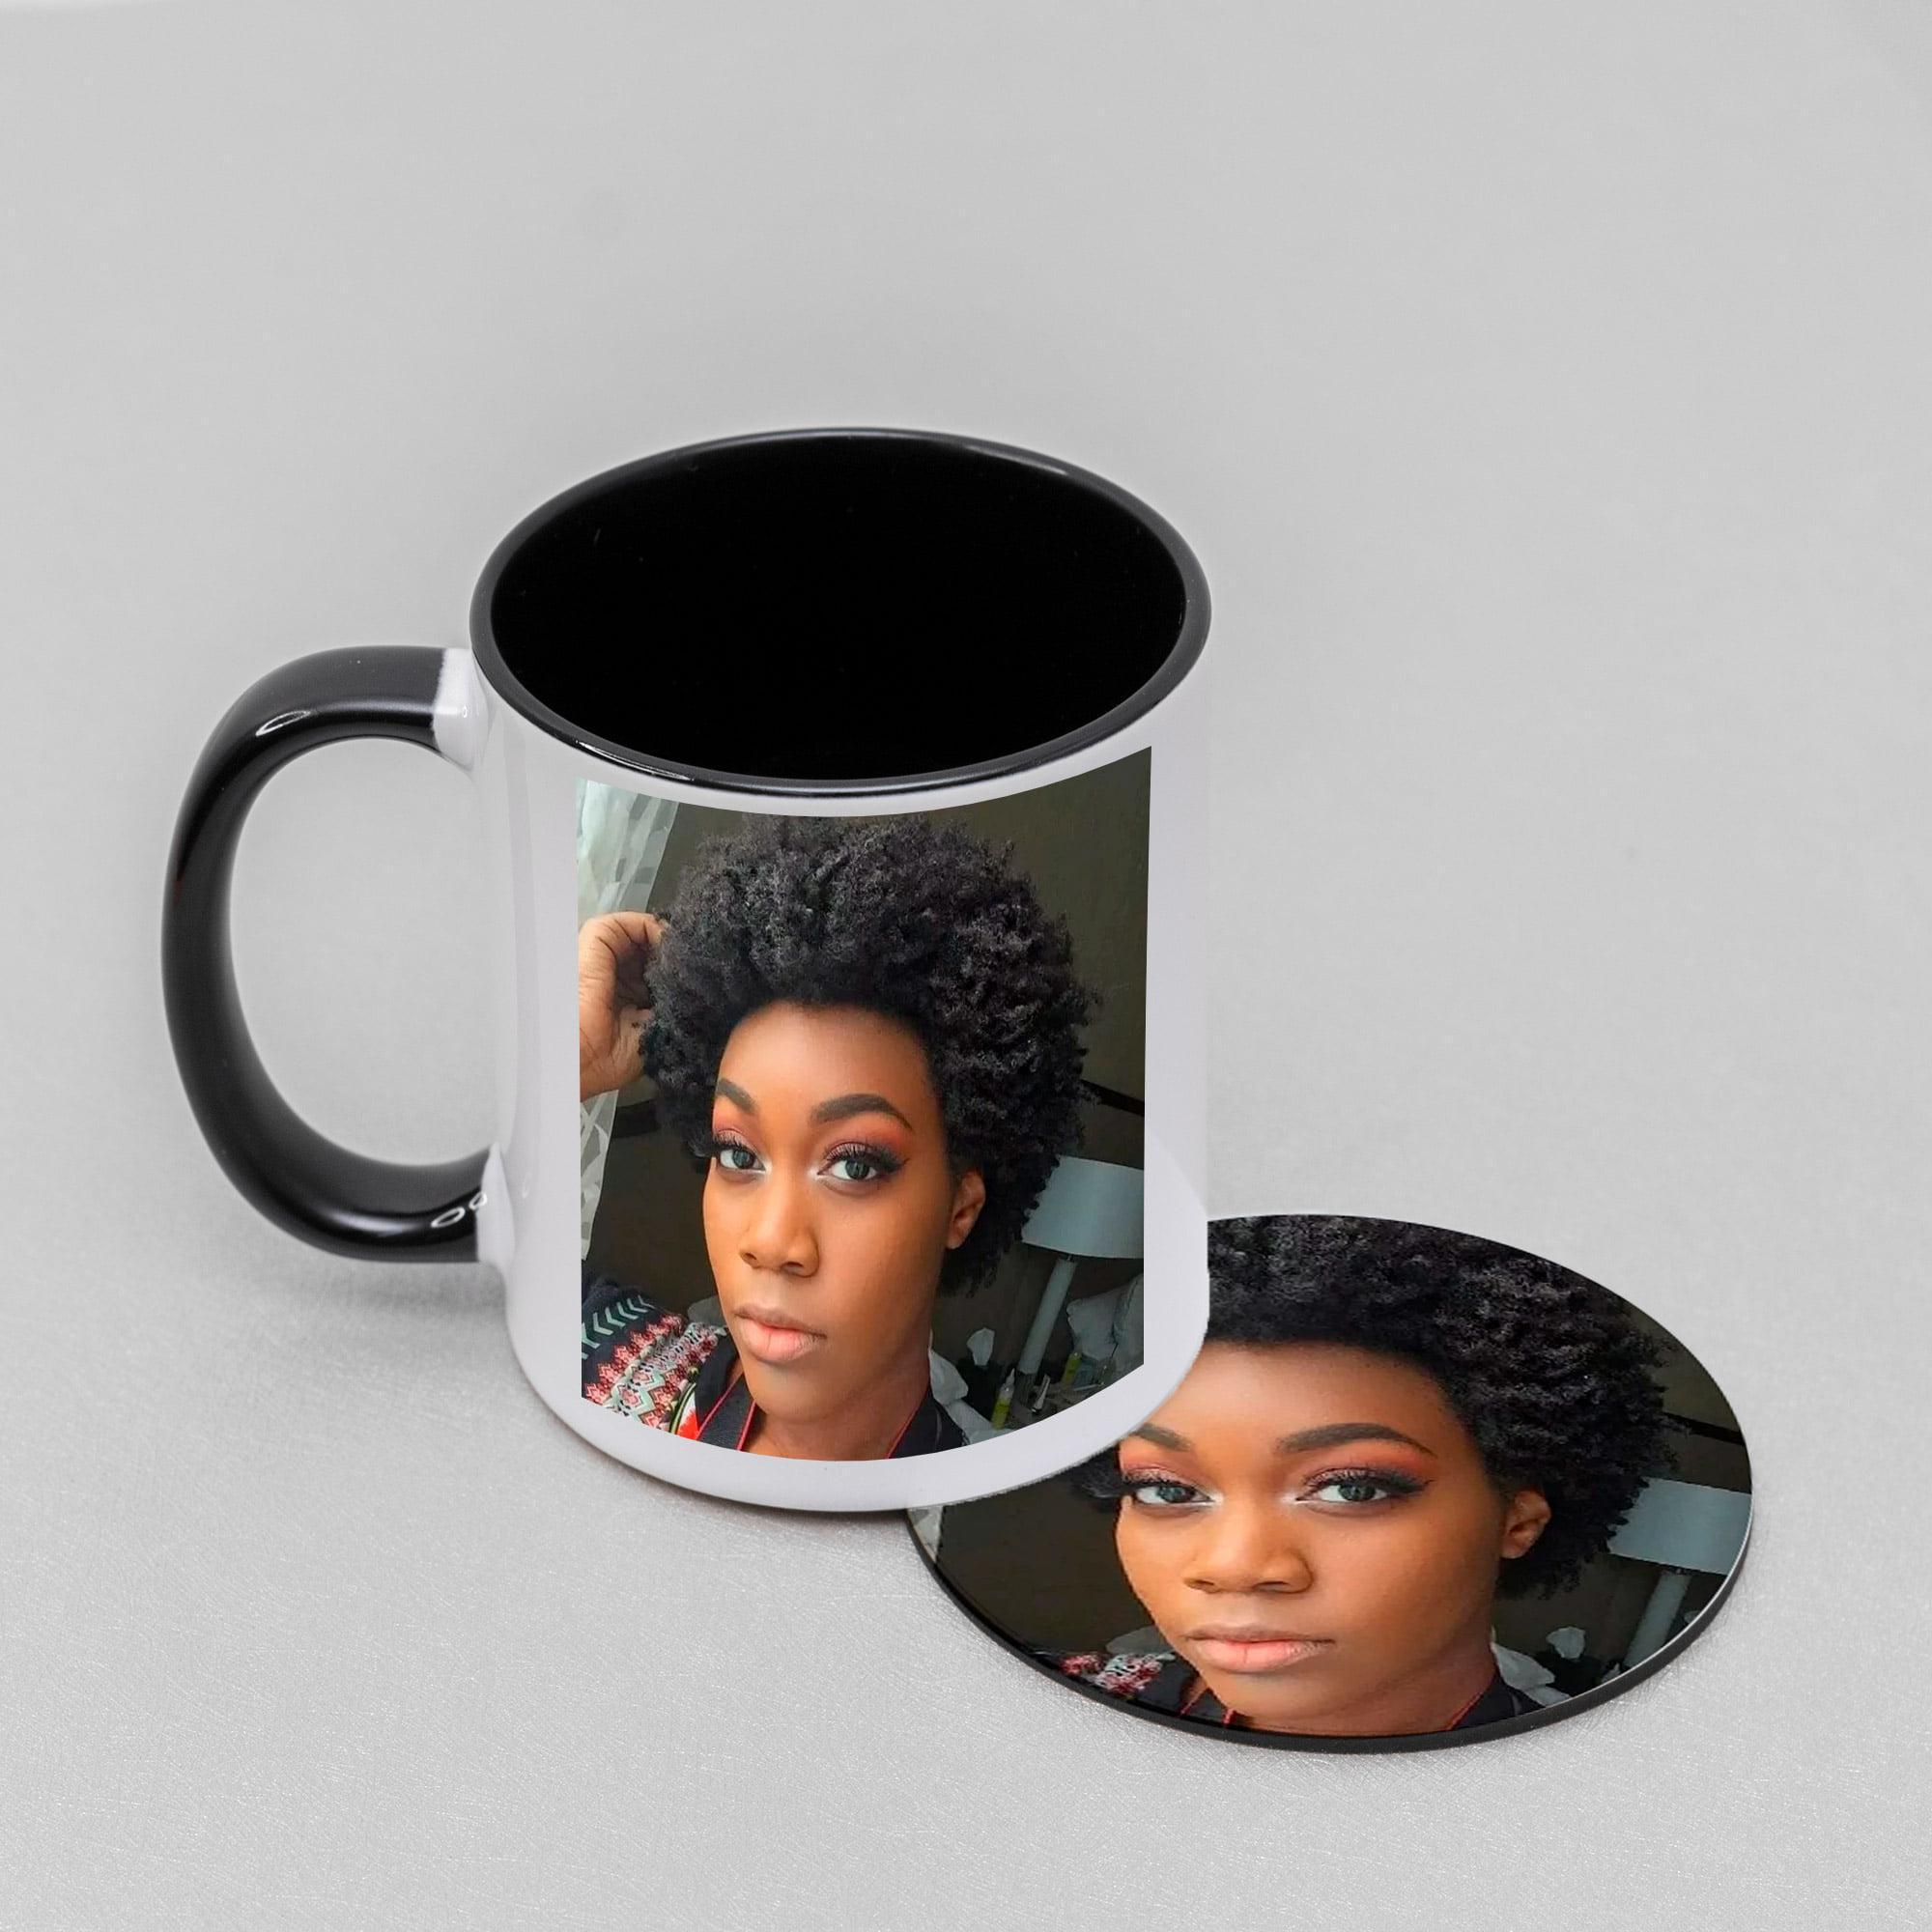 Personalised Photo Upload Coded Mug And Coaster Set